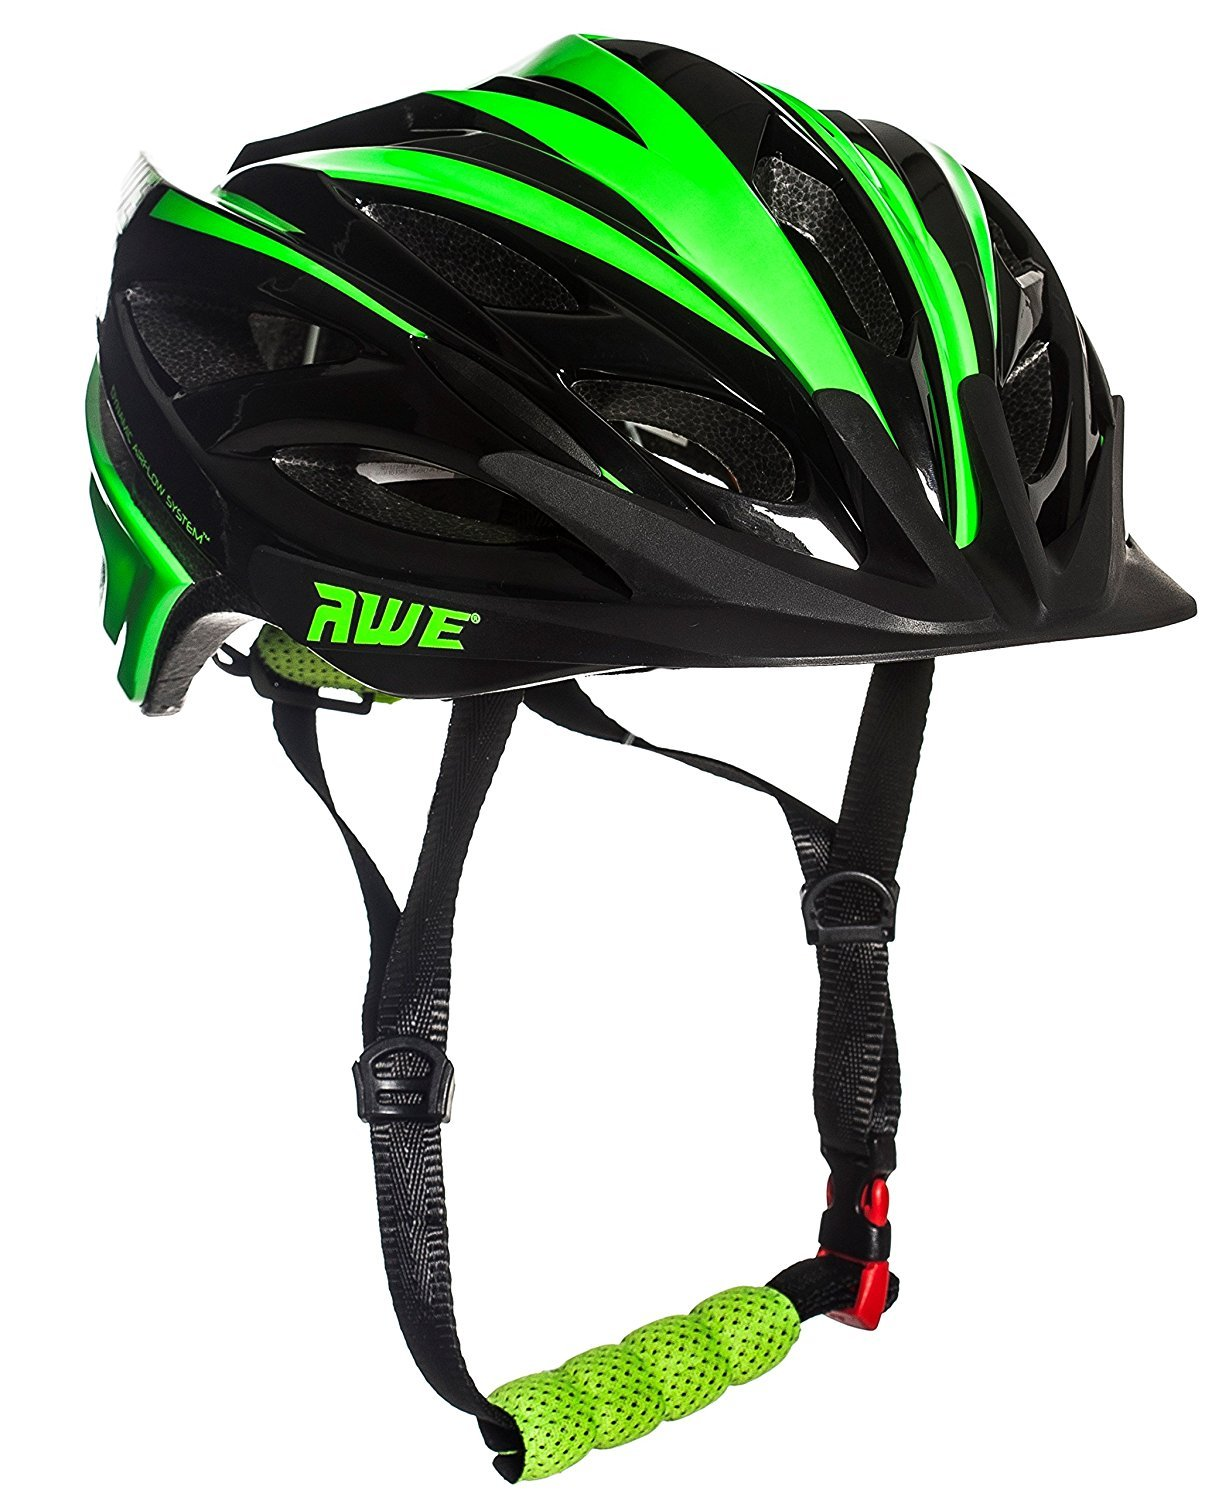 AWE® awebladetm libre 5 Año Crash de repuesto * En molde Junior casco de ciclismo (52 – 56 cm), color negro/verde